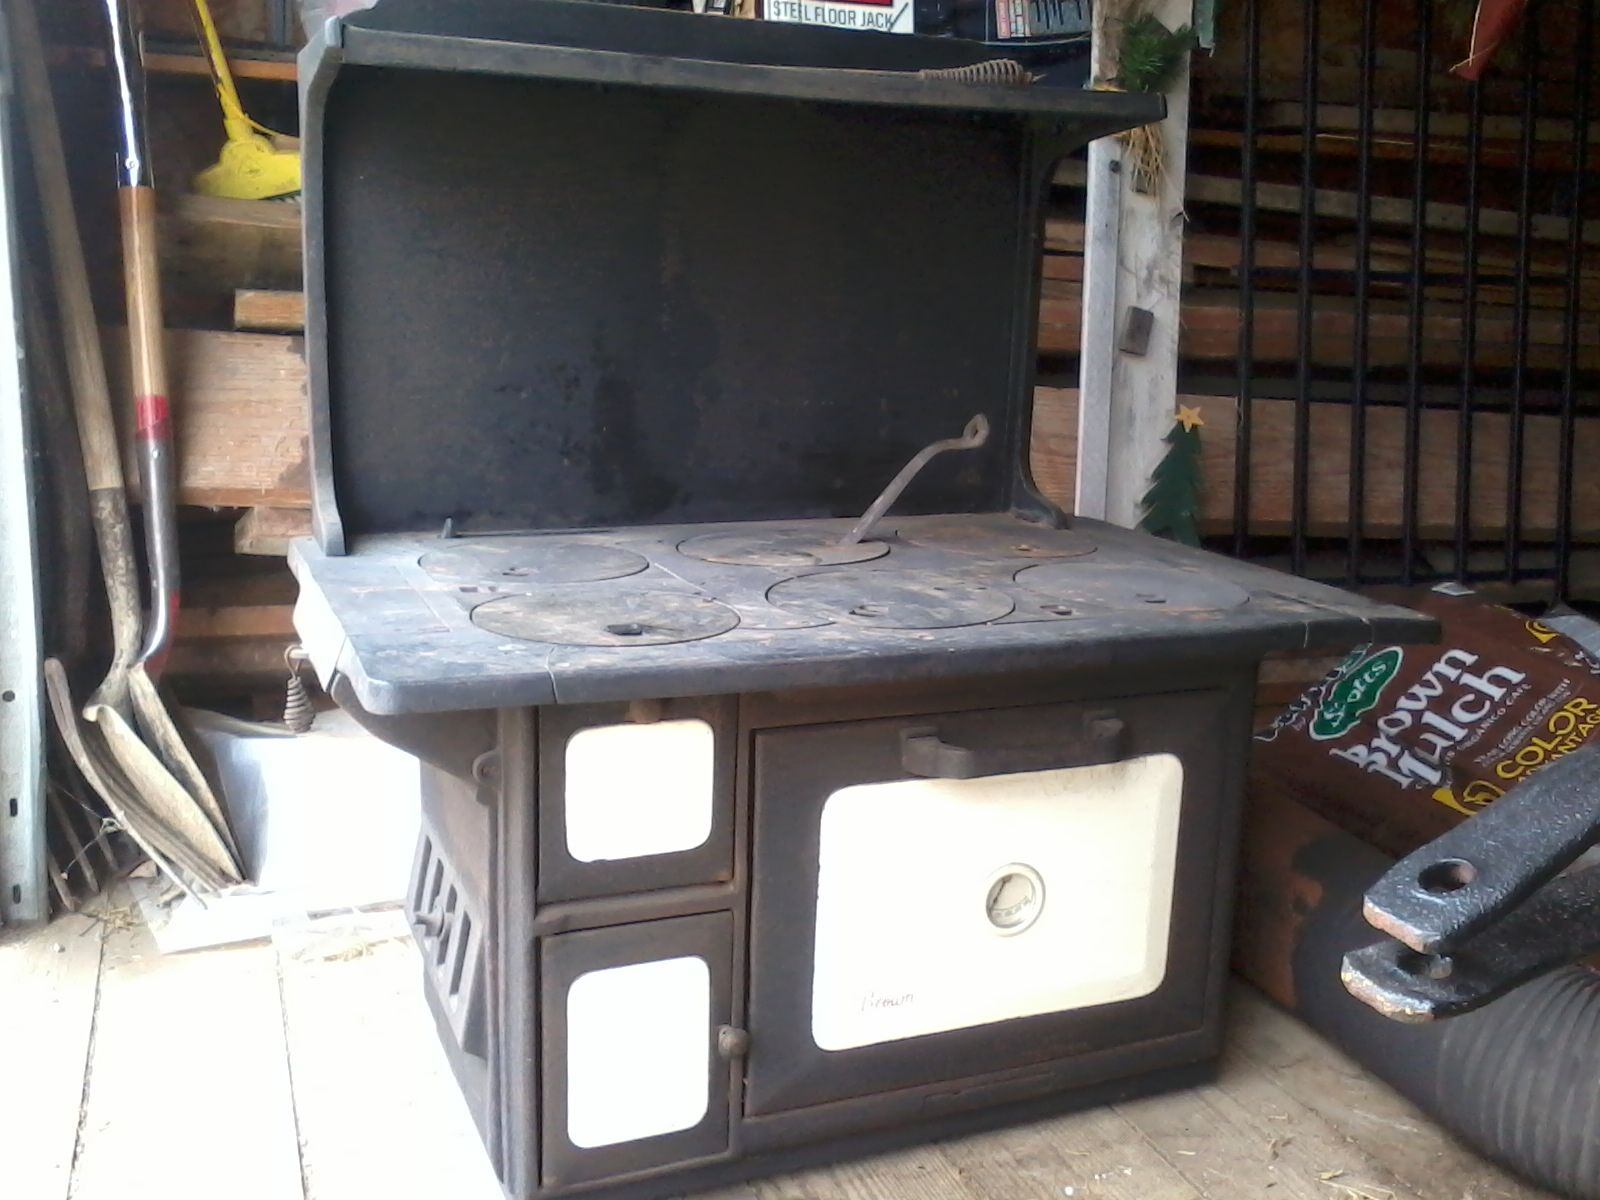 Antique coal & wood stove to put in garden shed